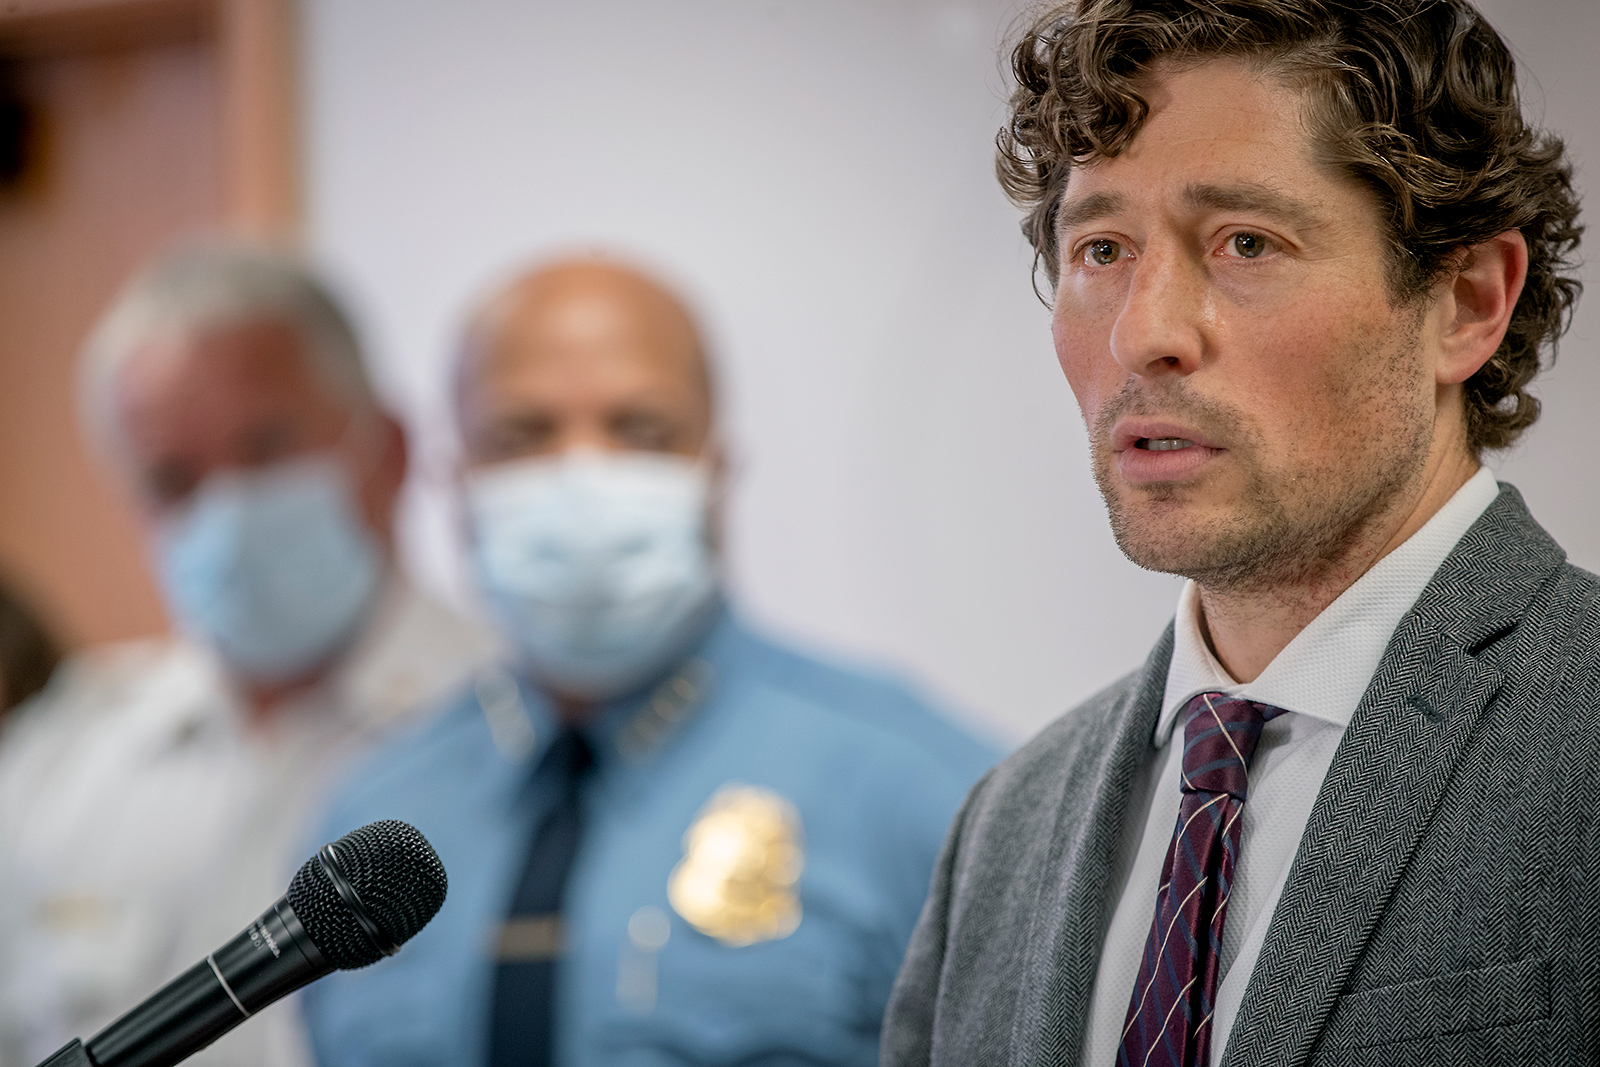 Minneapolis Mayor Jacob Frey speaks during a news conference on Thursday, May 28, in Minneapolis.